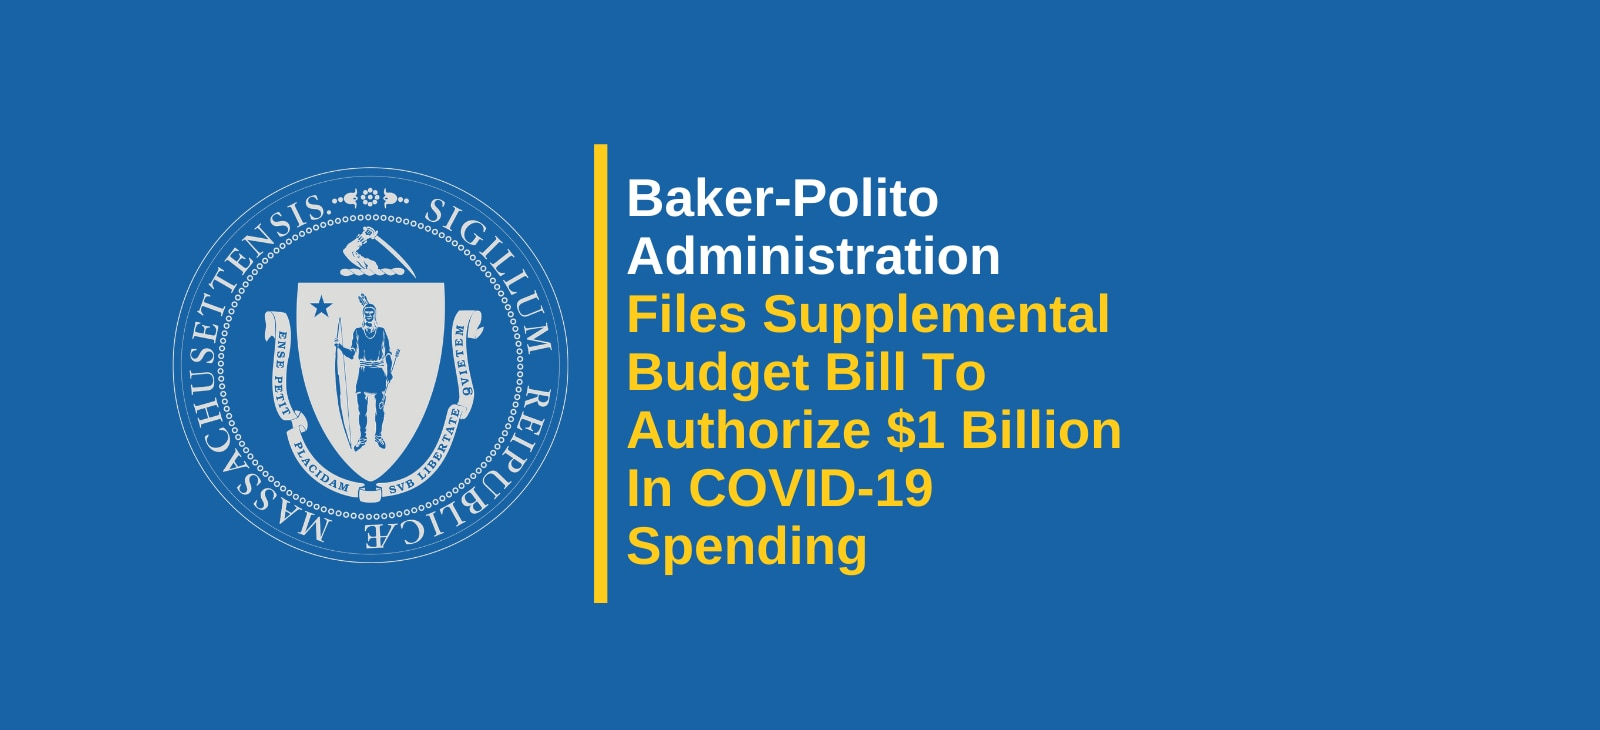 Baker-Polito Administration Files Supplemental Budget Bill to Authorize $1 Billion in COVID-19 Spending